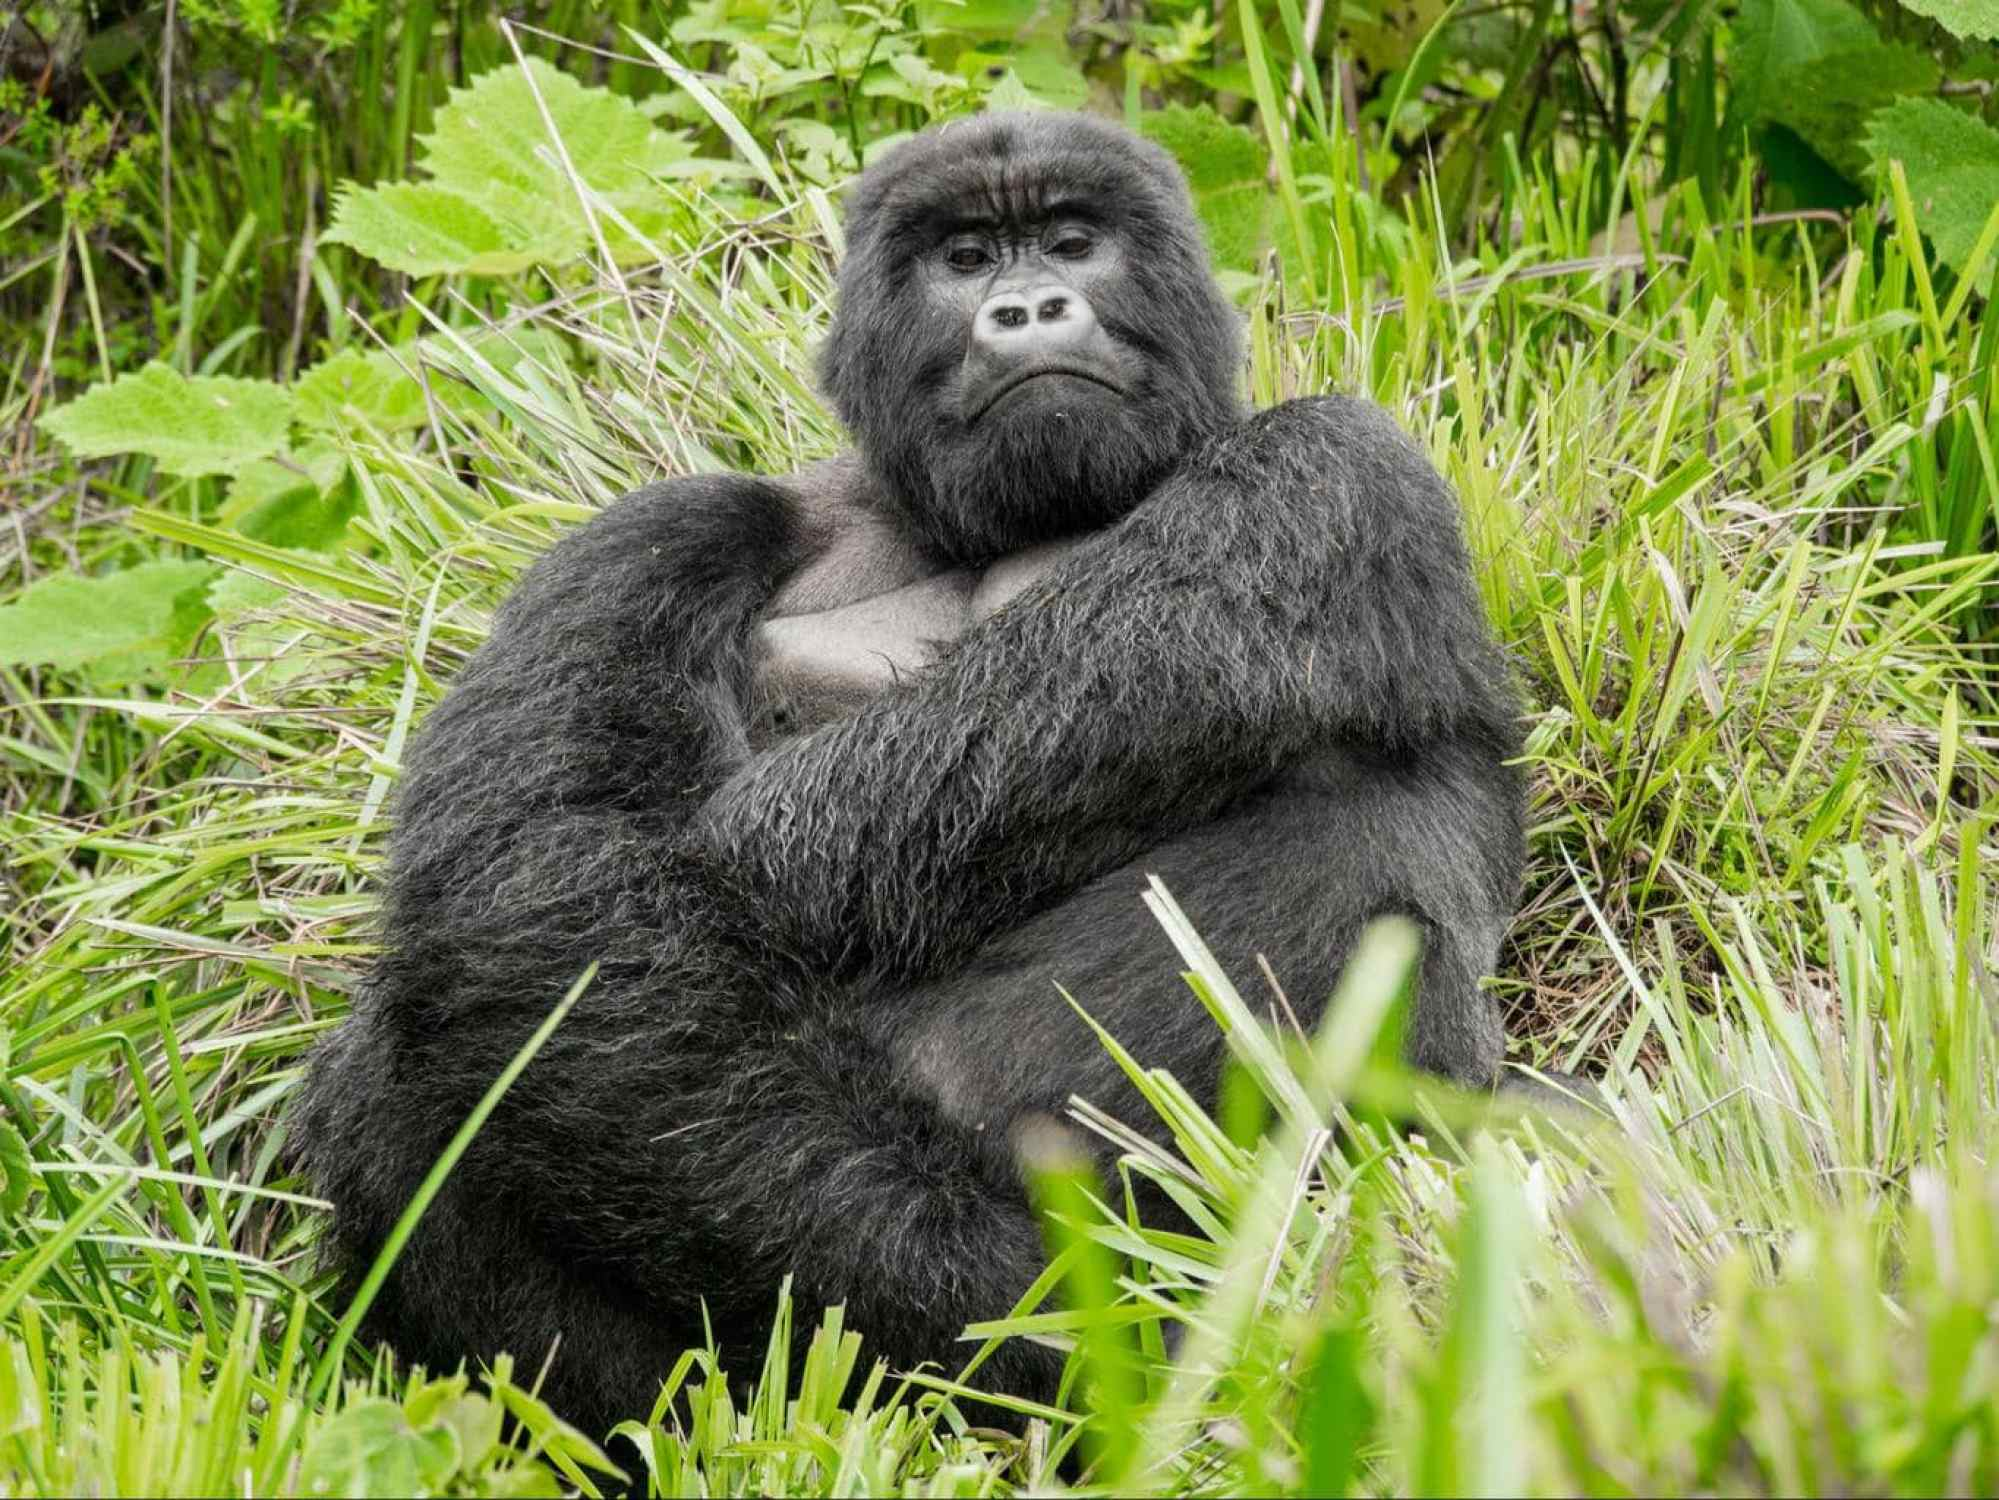 The silverback, calm but imposing